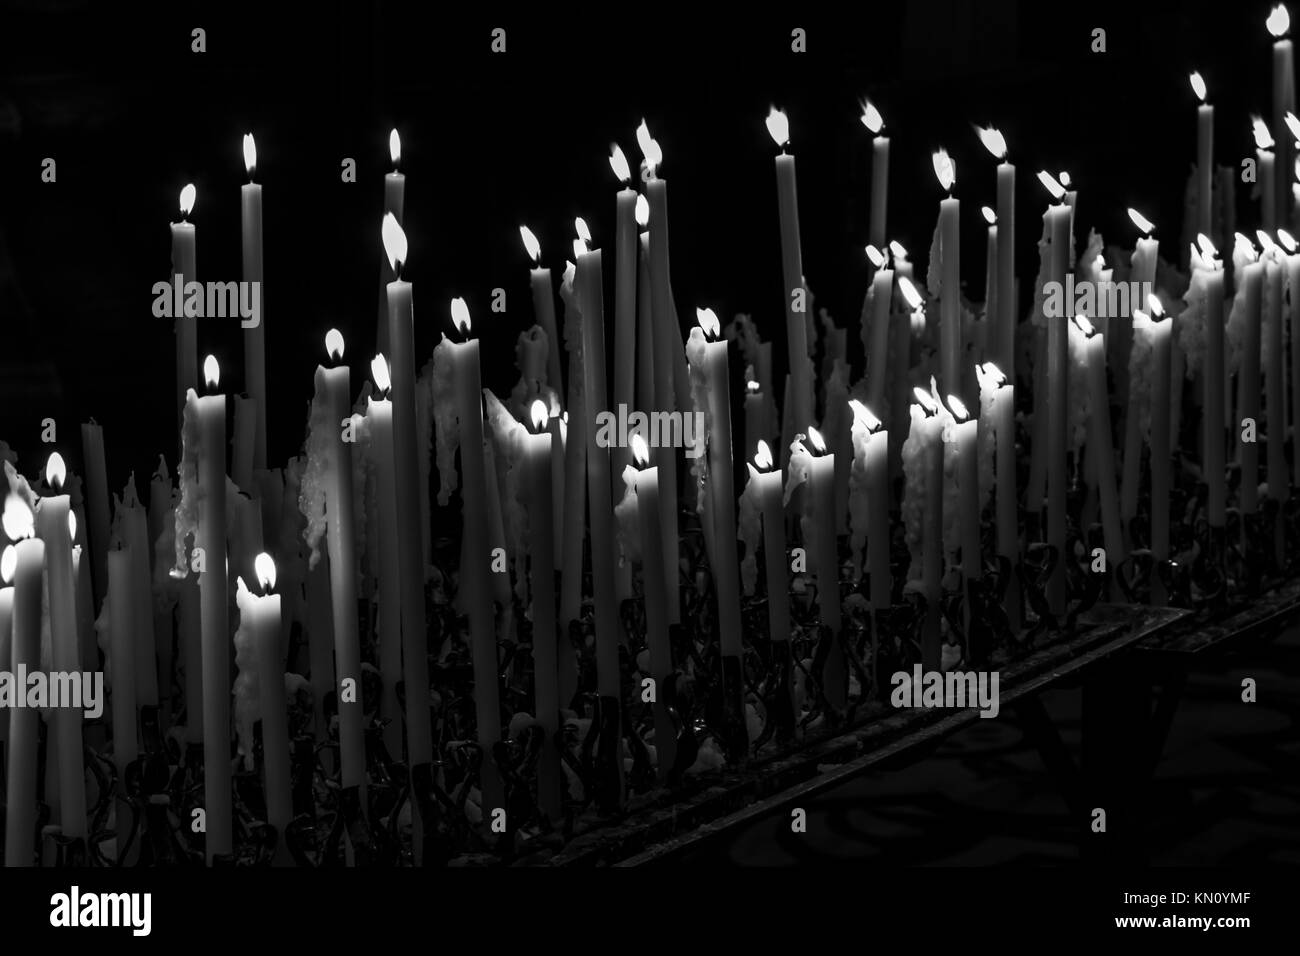 Religious candles in the church - Stock Image